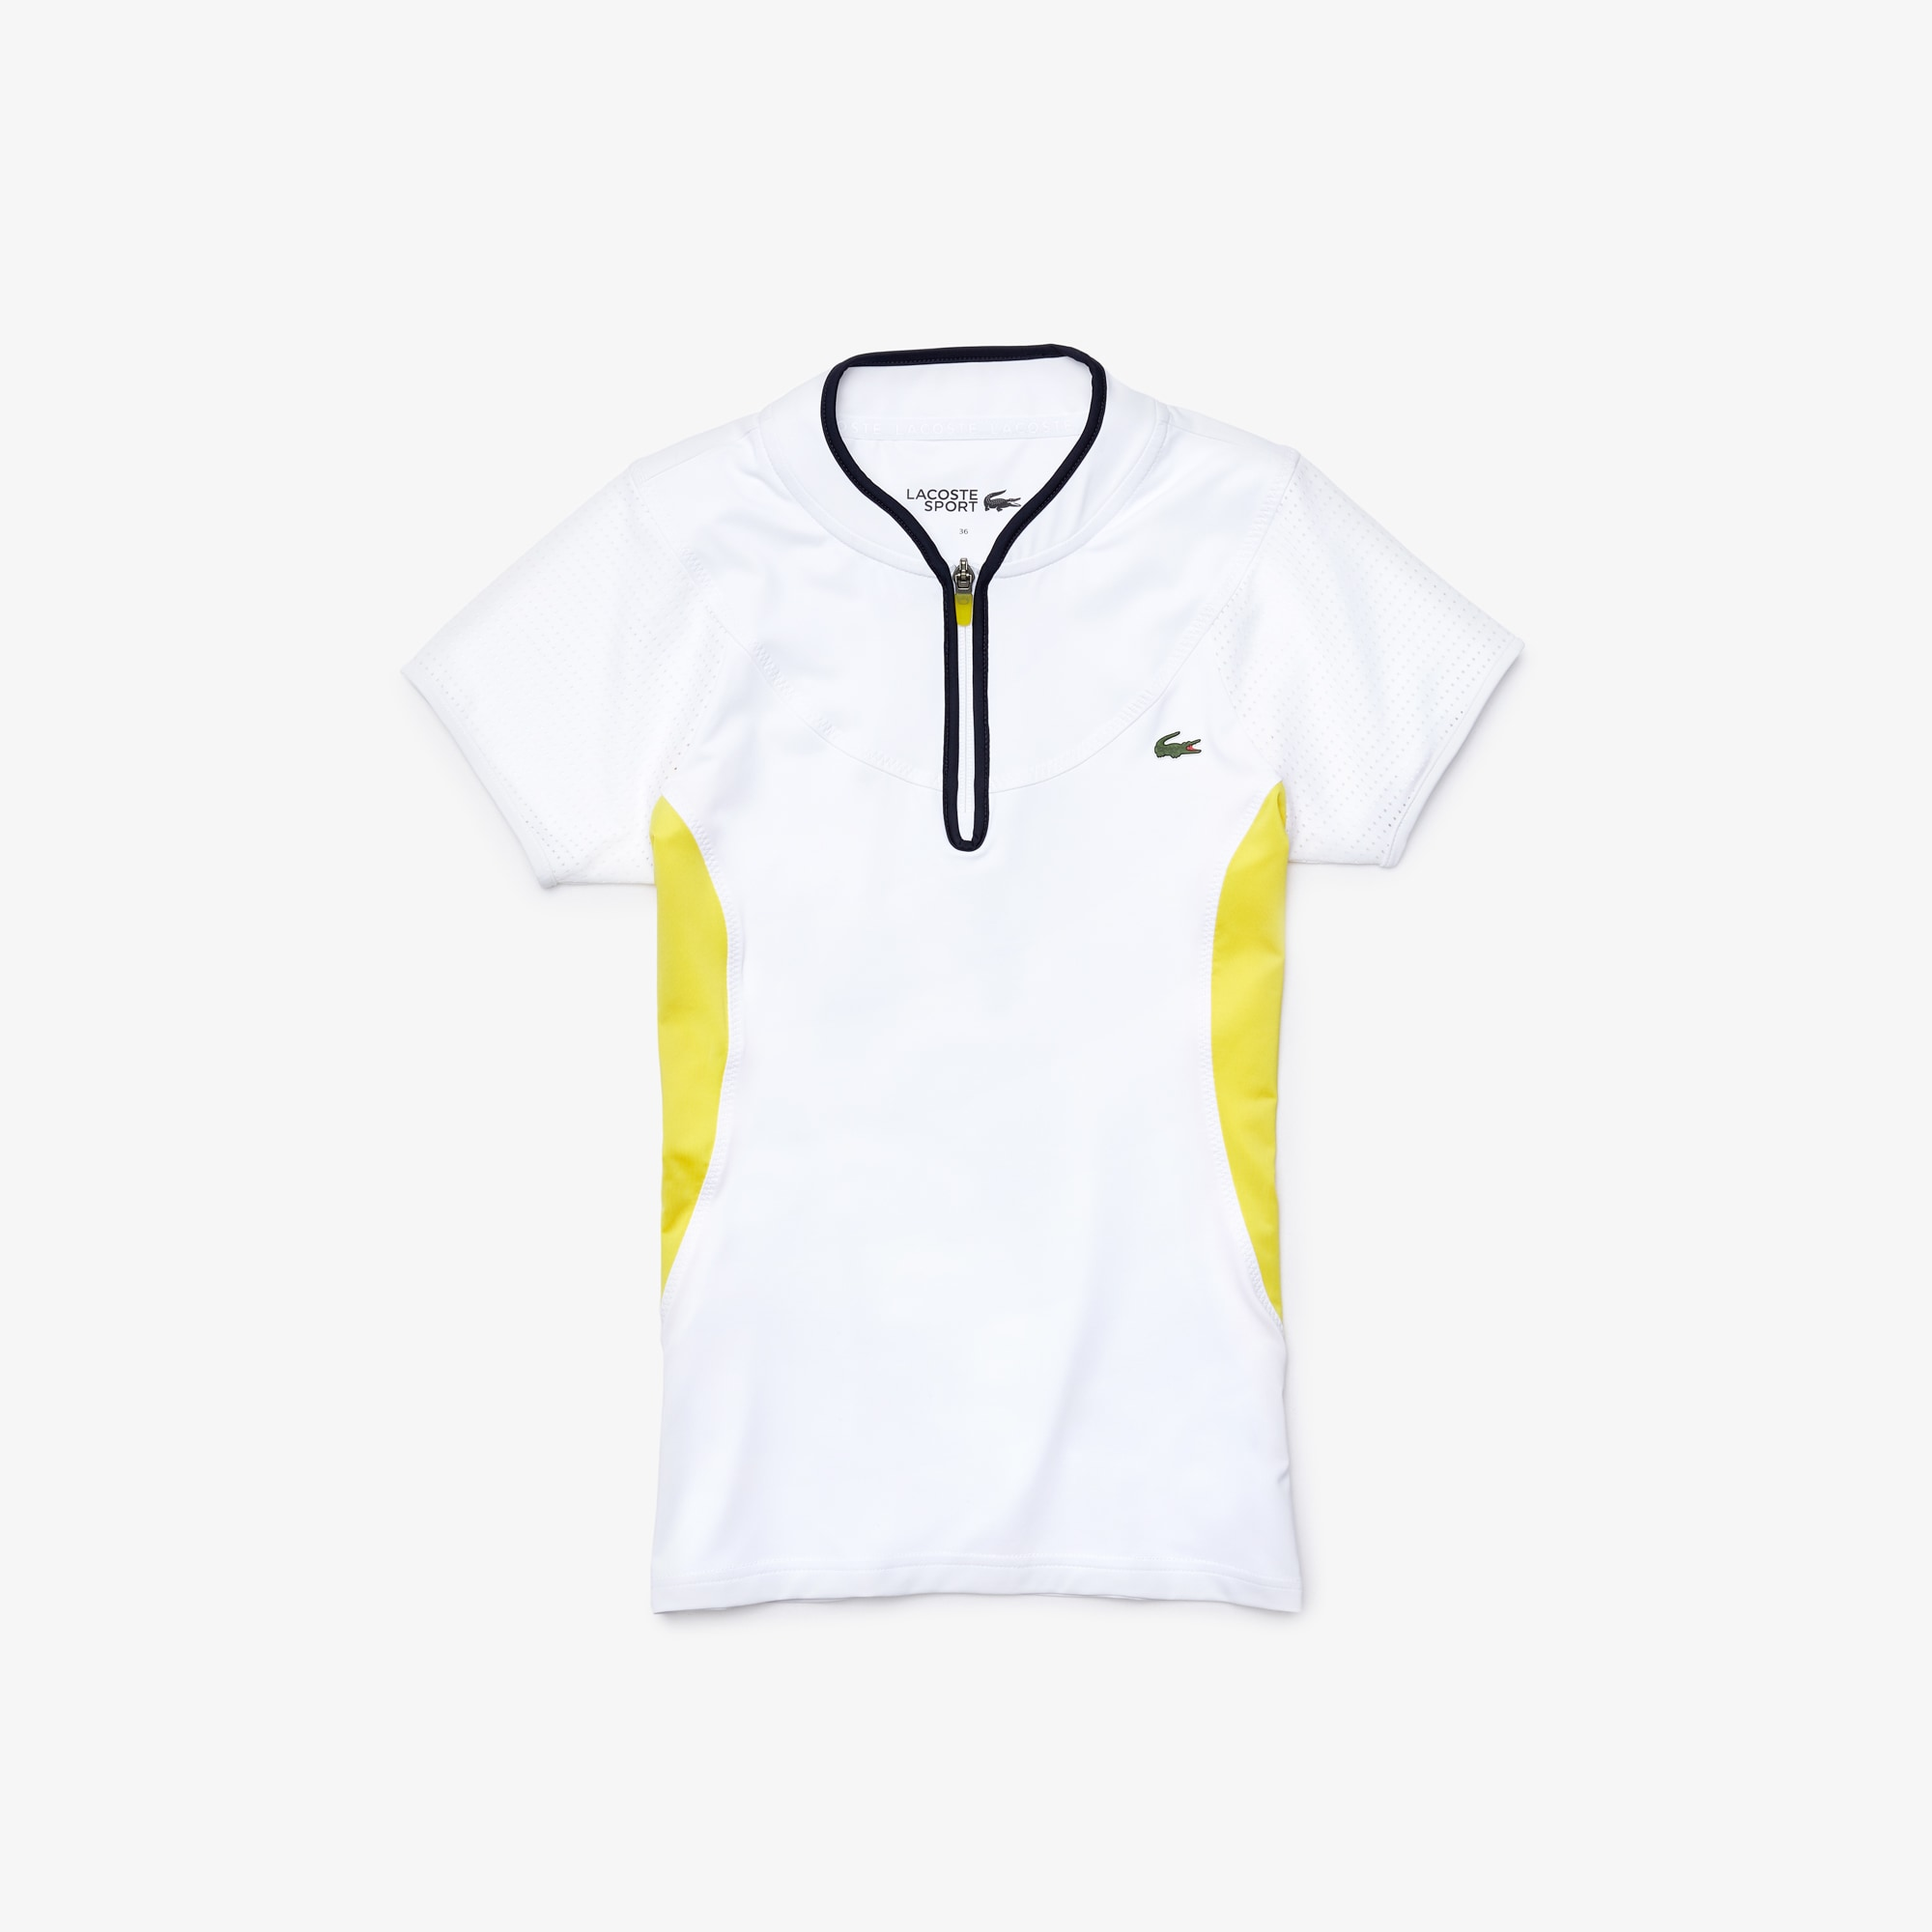 Women's Lacoste SPORT Breathable Bi-Material Stretch Tennis Polo Shirt